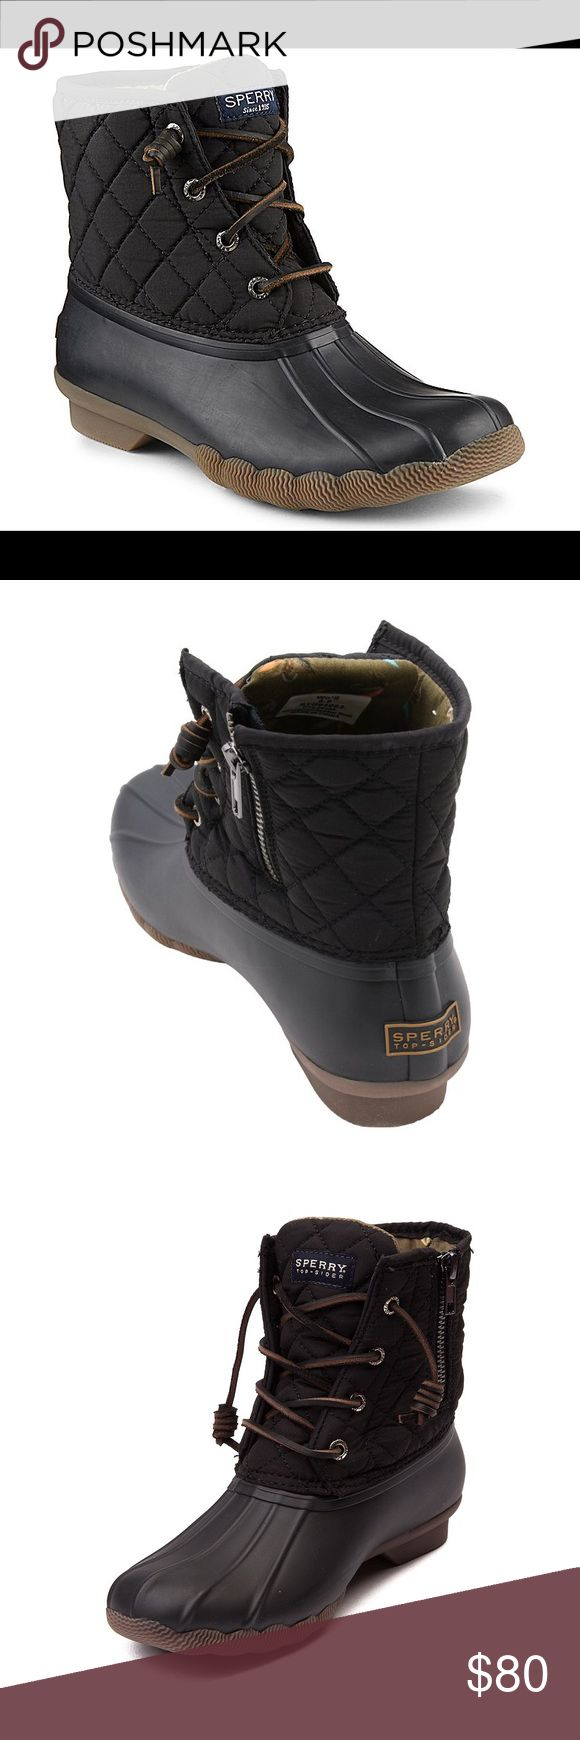 Sperry Saltwater Duck Boot Black 8.5 Make that outfit on Pinterest your reality with this duck boot! Classic duck boot with quilted upper. Inside is lined with a fly fishing inspired fabric. Rubber bottom, rounded toe, rust proof eyelets. Zip up side for easy on and off. Fun leather laces with spiral ends for fun sleek look, no bunchy laces. Perfect for all seasons, especially for rain! Boots have only been worn once. Please feel free to make offers! Sperry Top-Sider Shoes Lace Up Boots